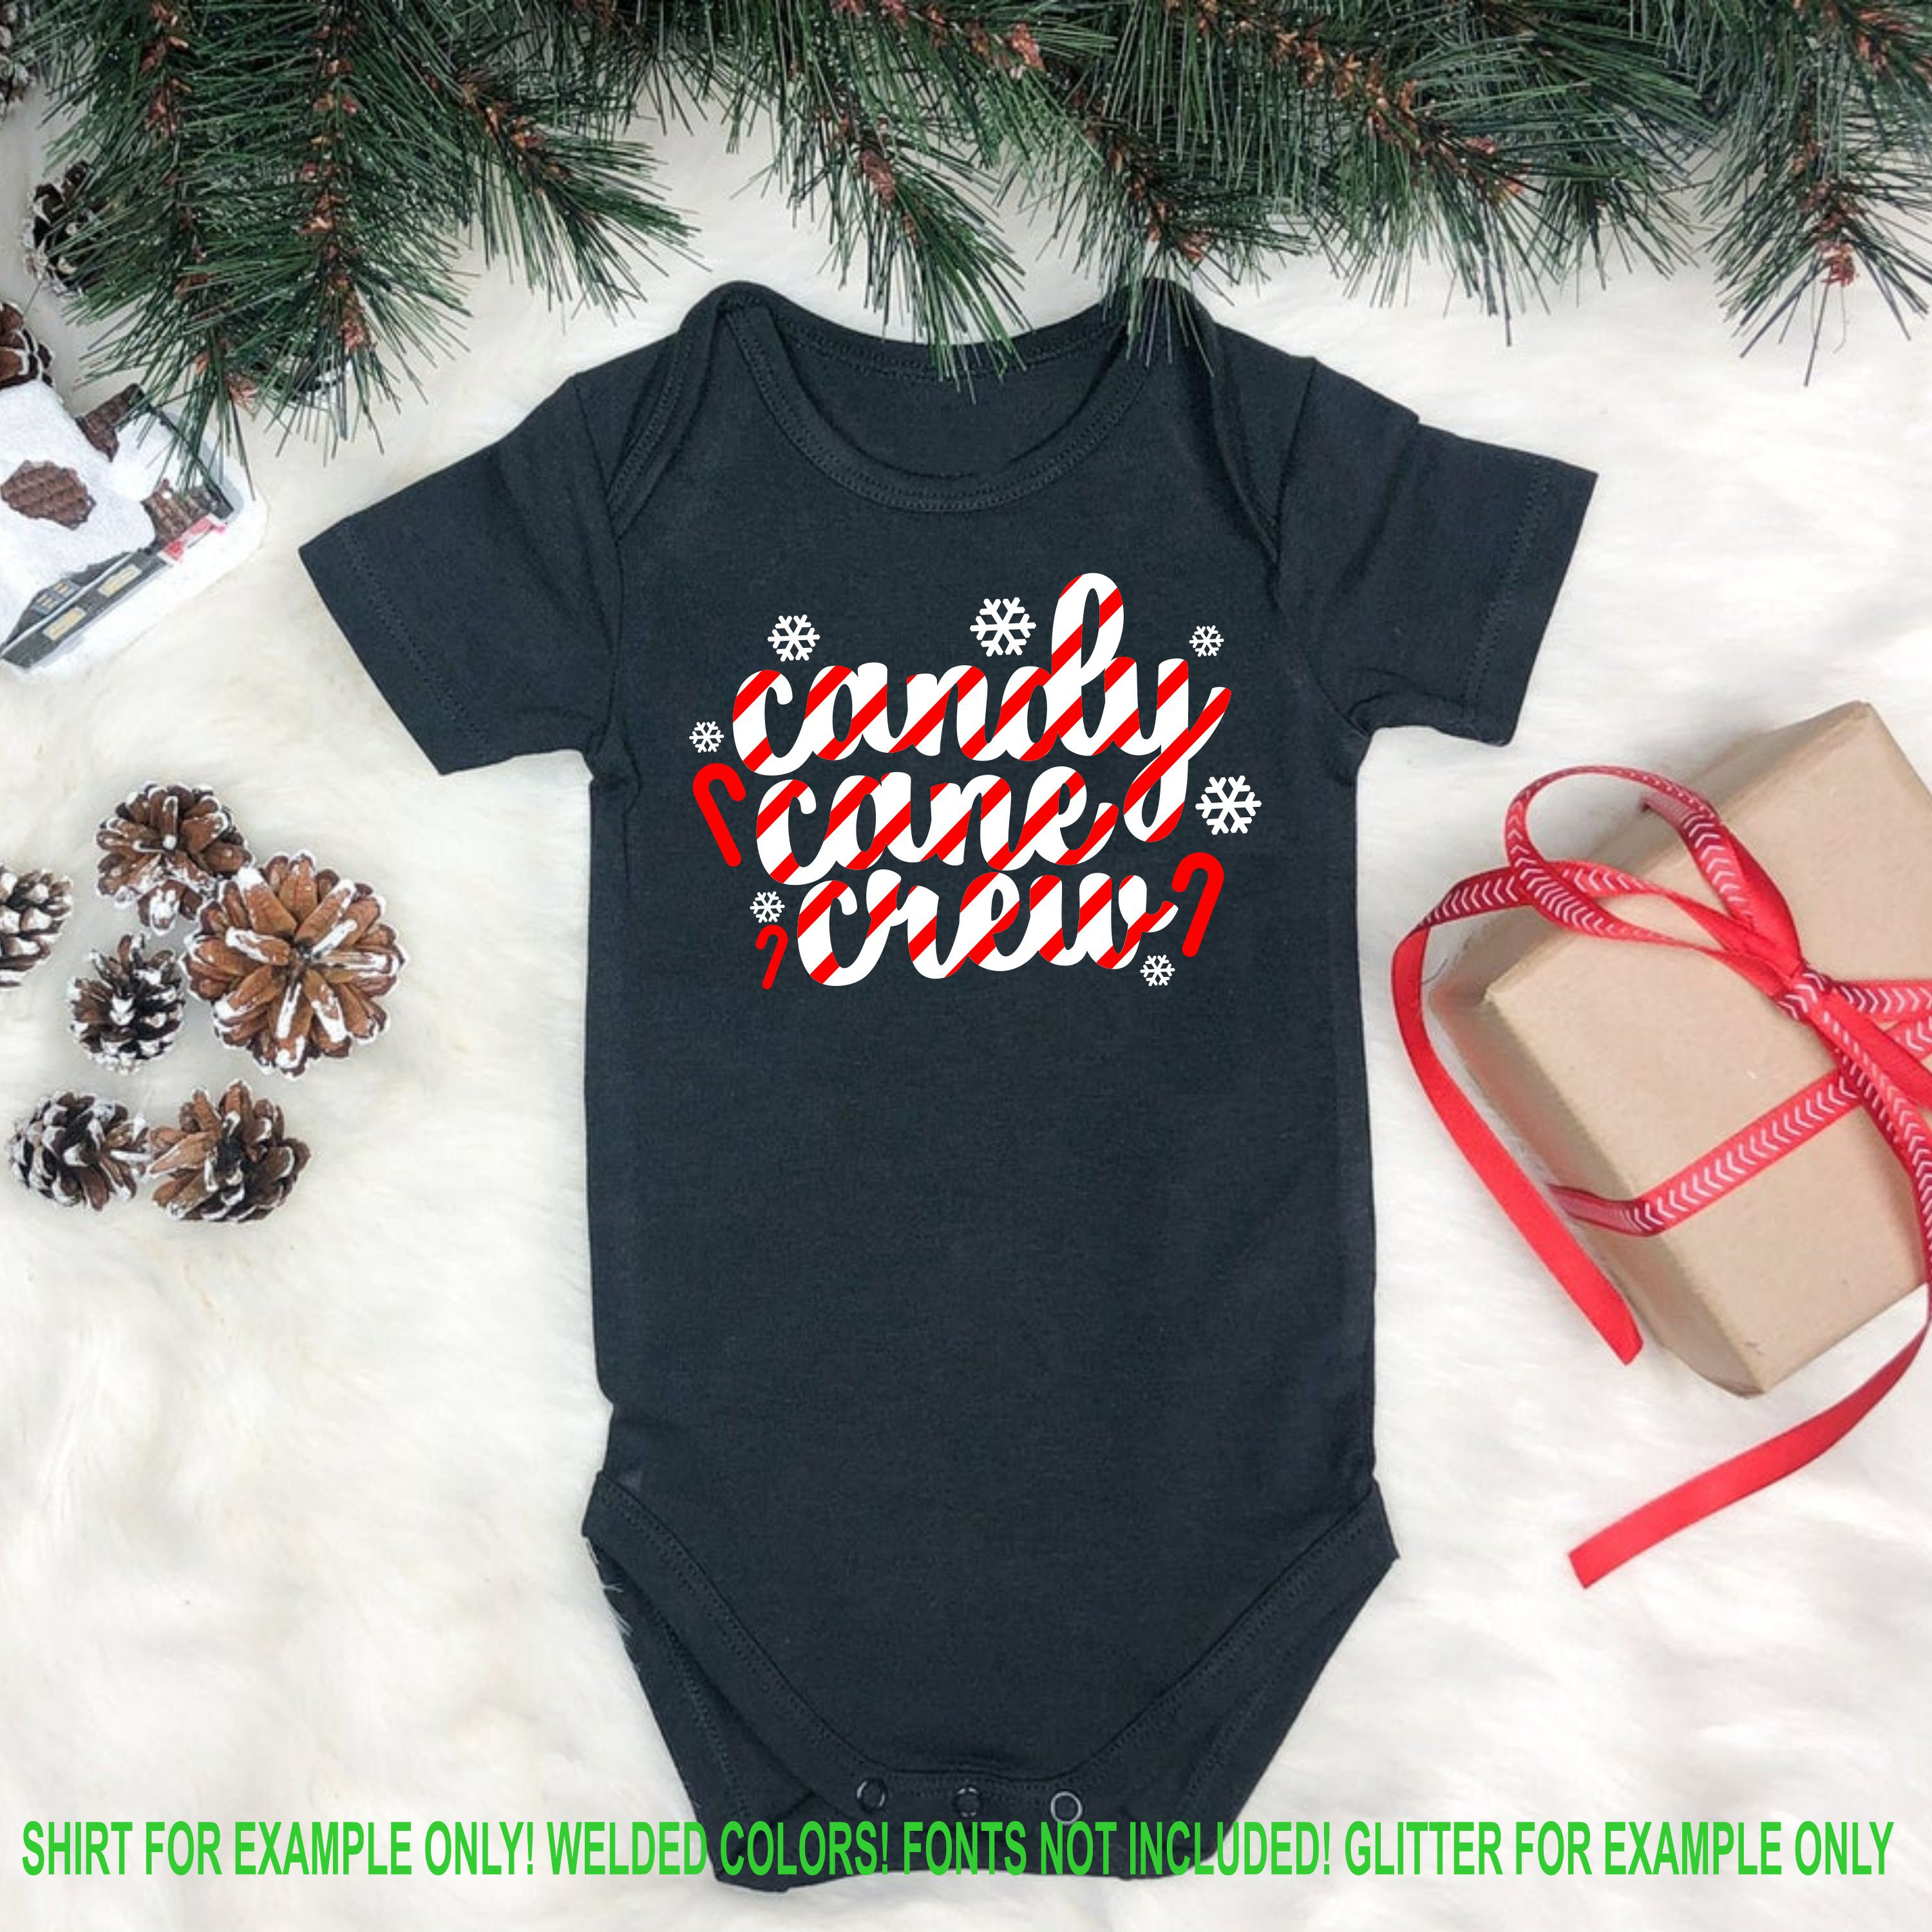 Candy-cane-cutie-svgchristmas-svgbaby-christmas-svg-christmaschristmas-time-svgchristmas-svg-cut-files-christmas-svg-design-5f787d1d